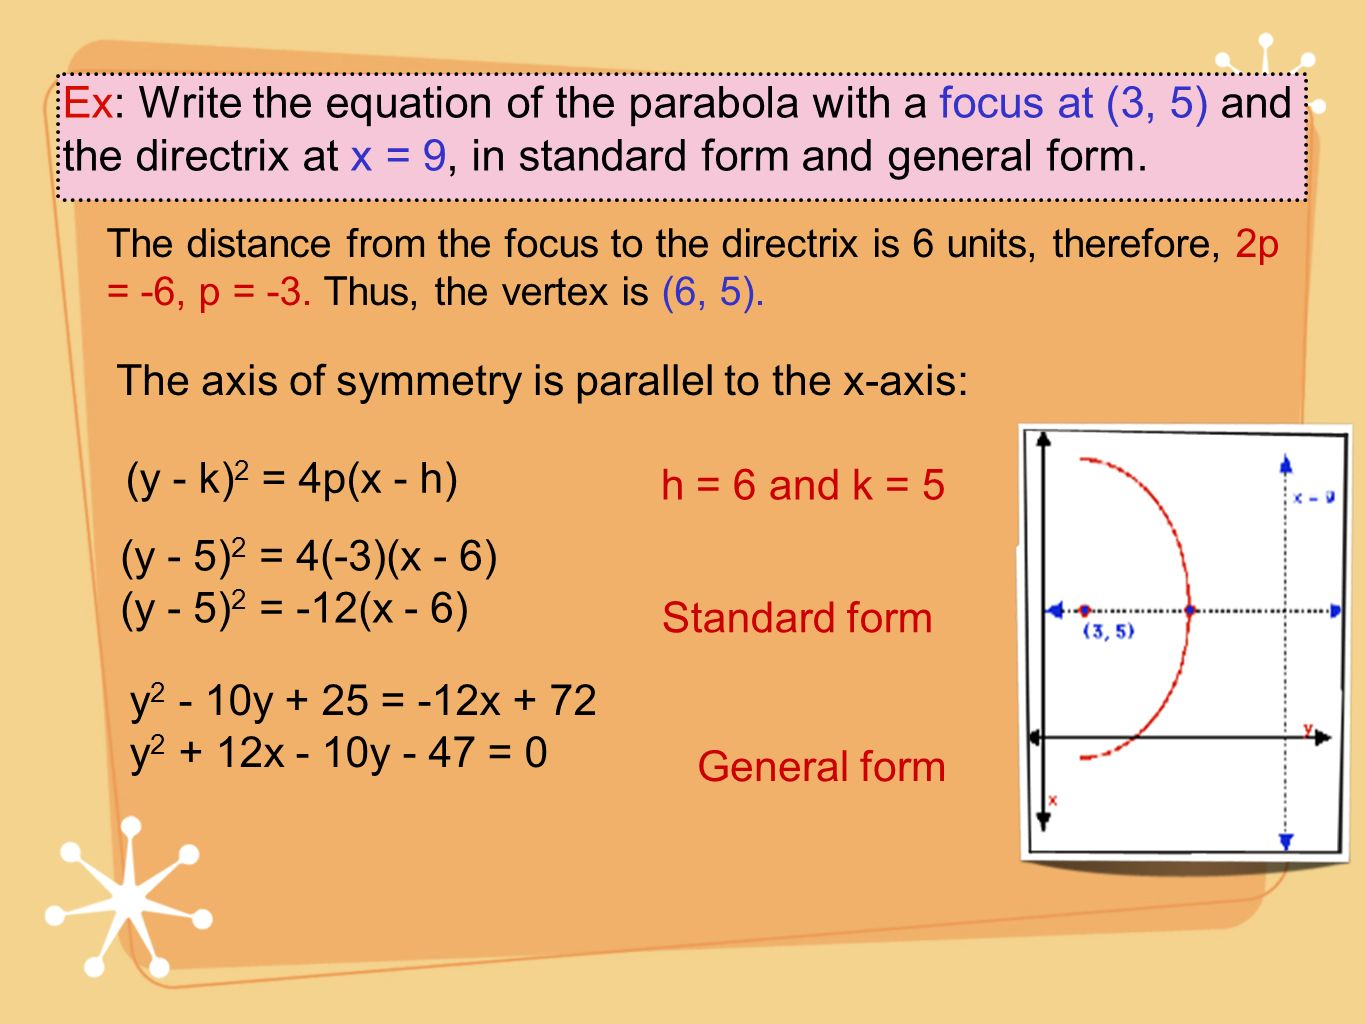 Parabola conic section ppt video online download ex write the equation of the parabola with a focus at 3 5 falaconquin